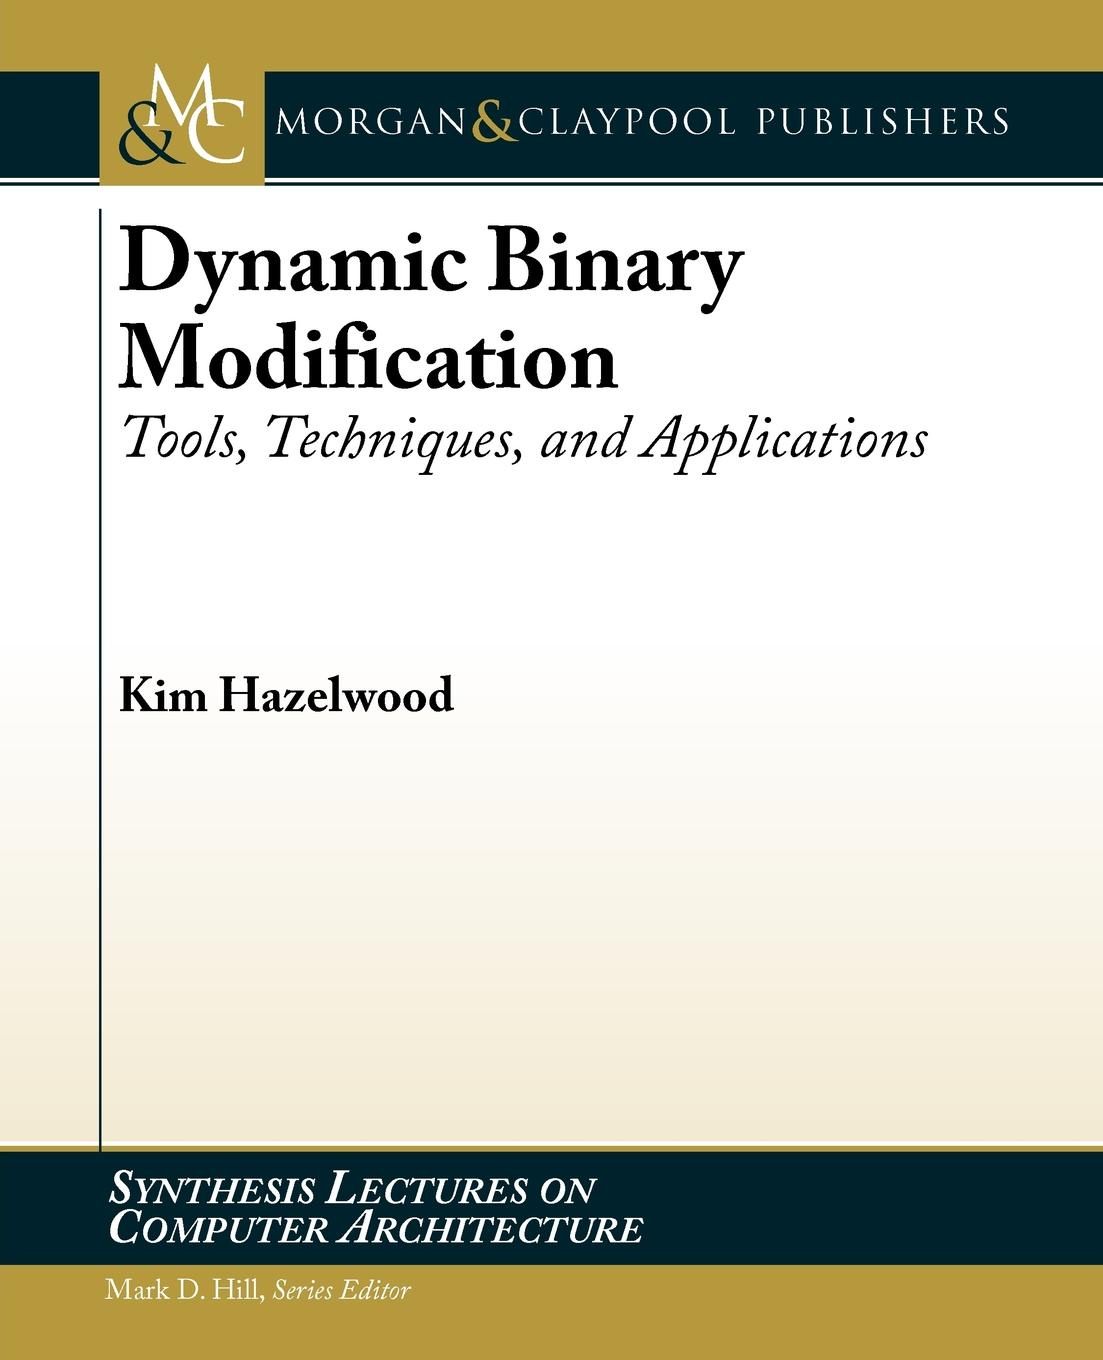 Kim Hazelwood. Dynamic Binary Modification. Tools, Techniques, and Applications